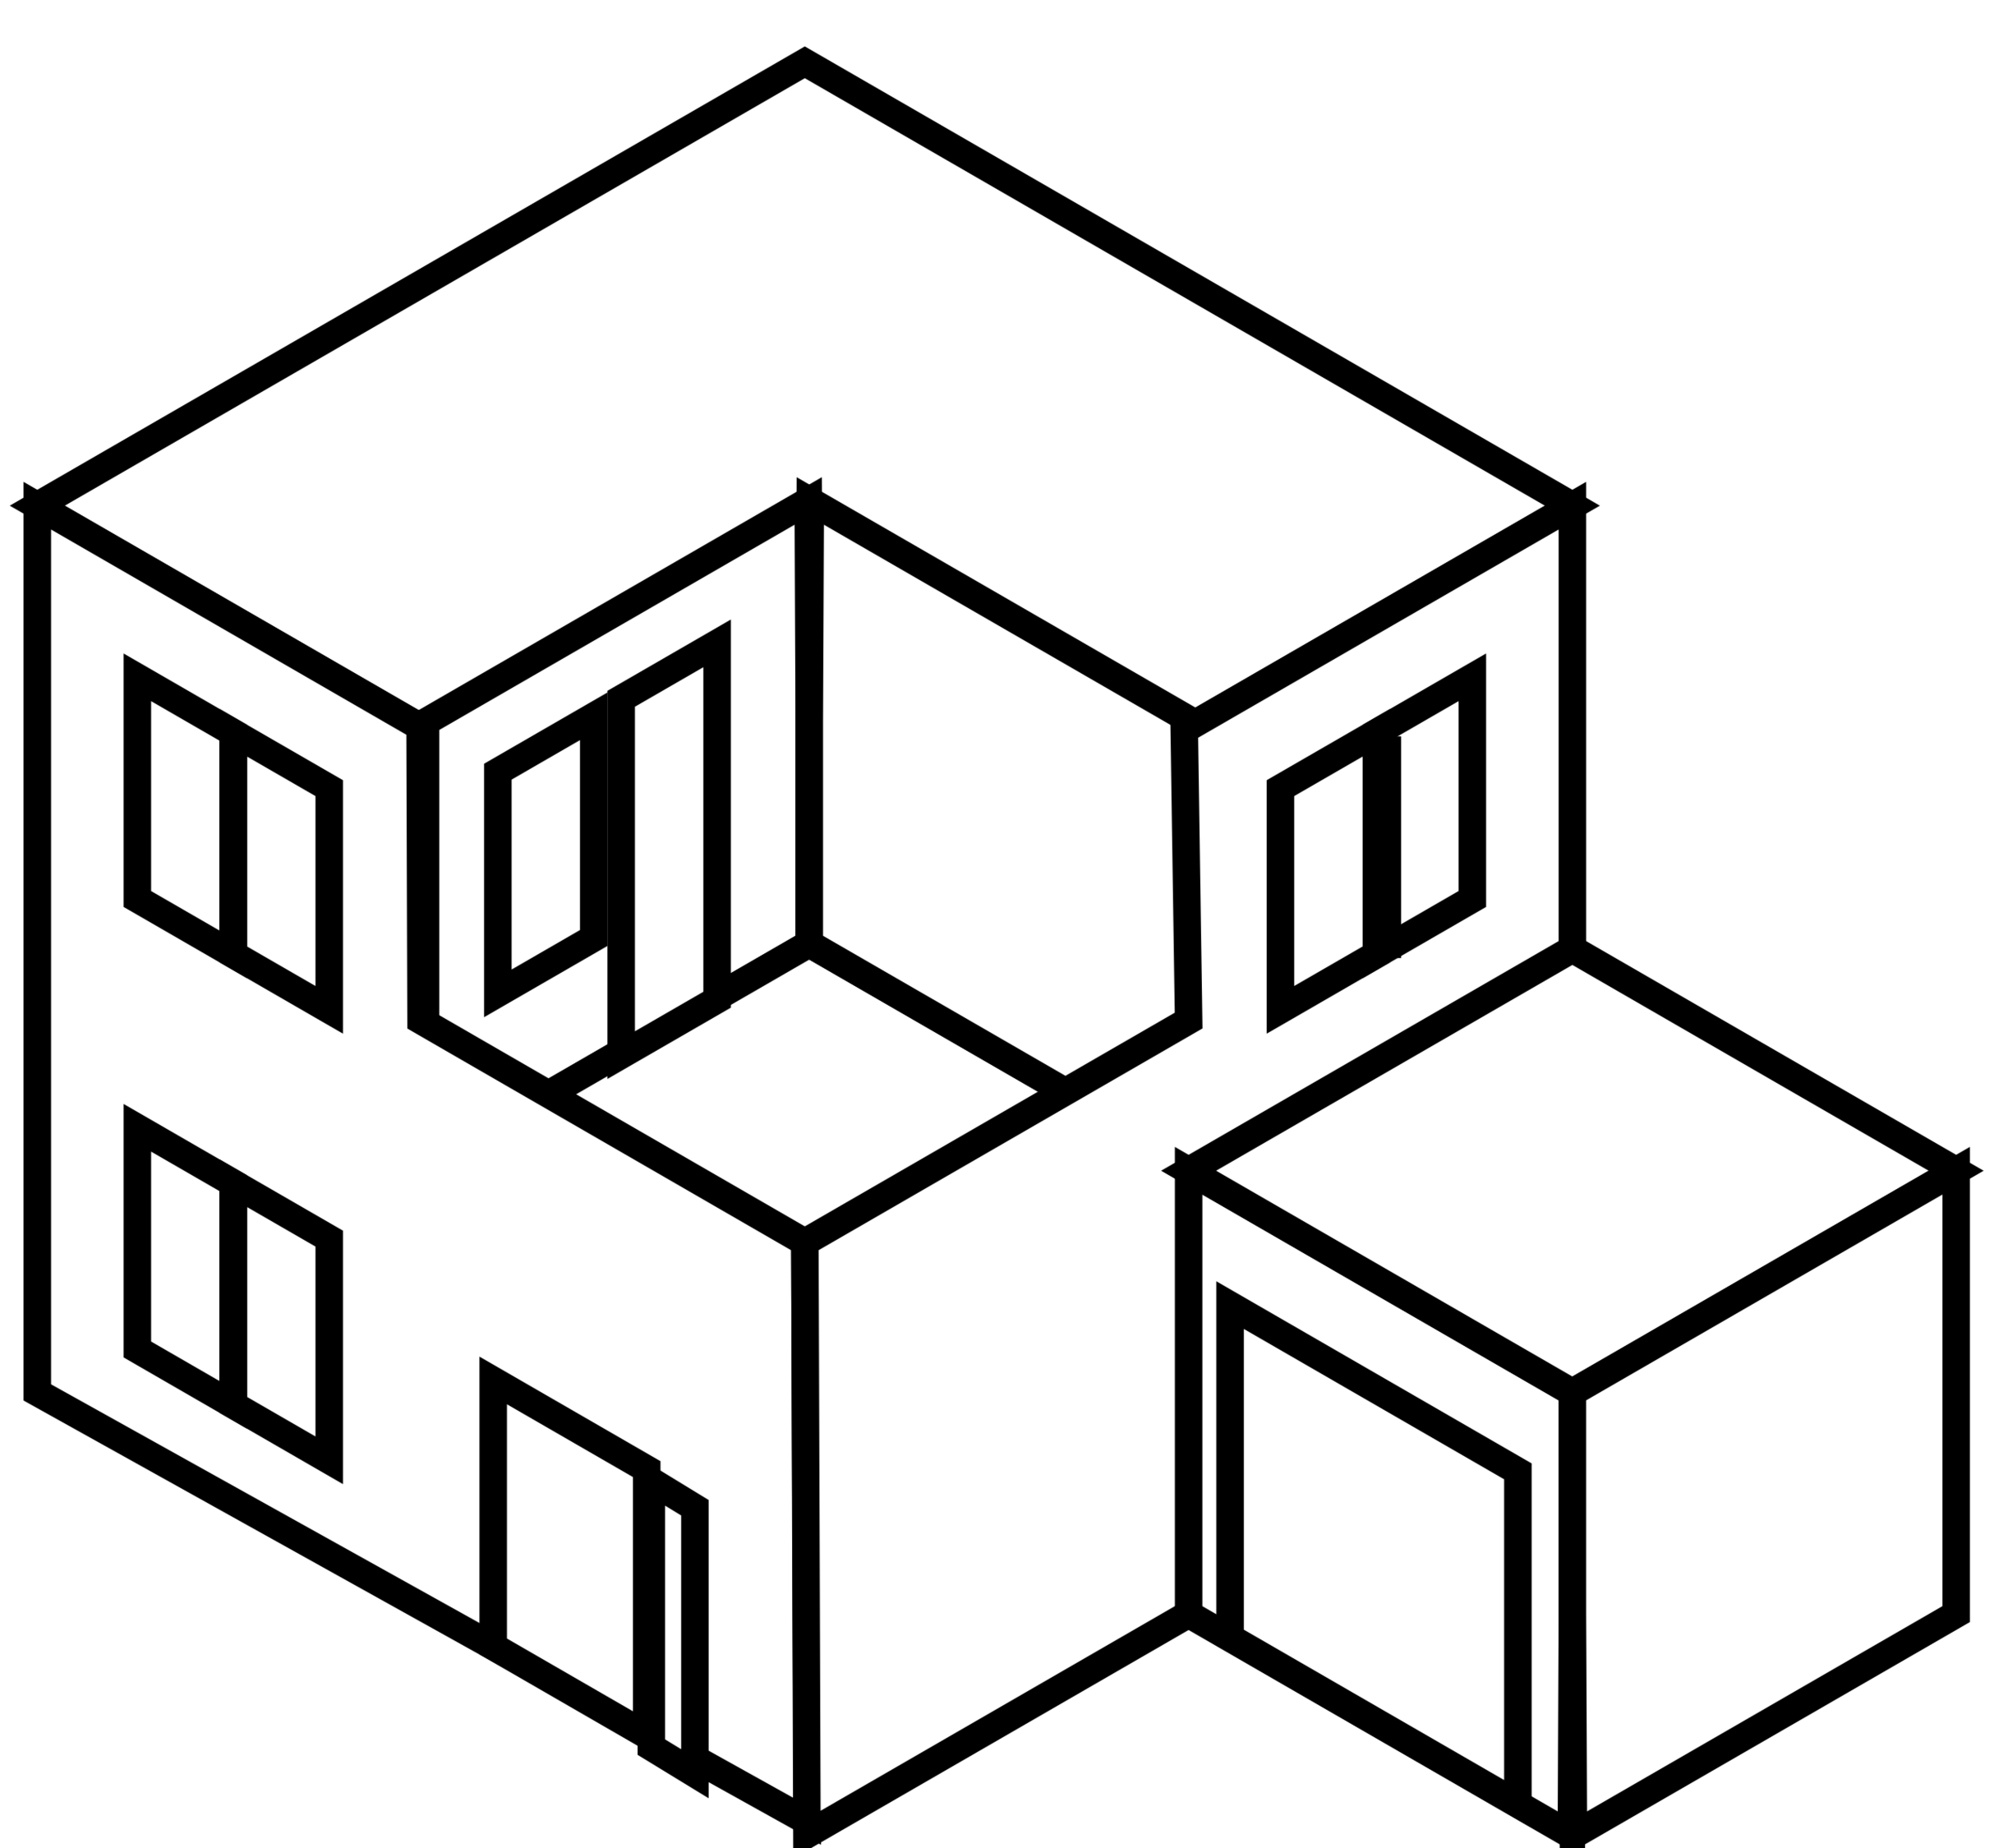 Line Drawing In Computer Graphics : House line drawing clipart free to use clip art resource